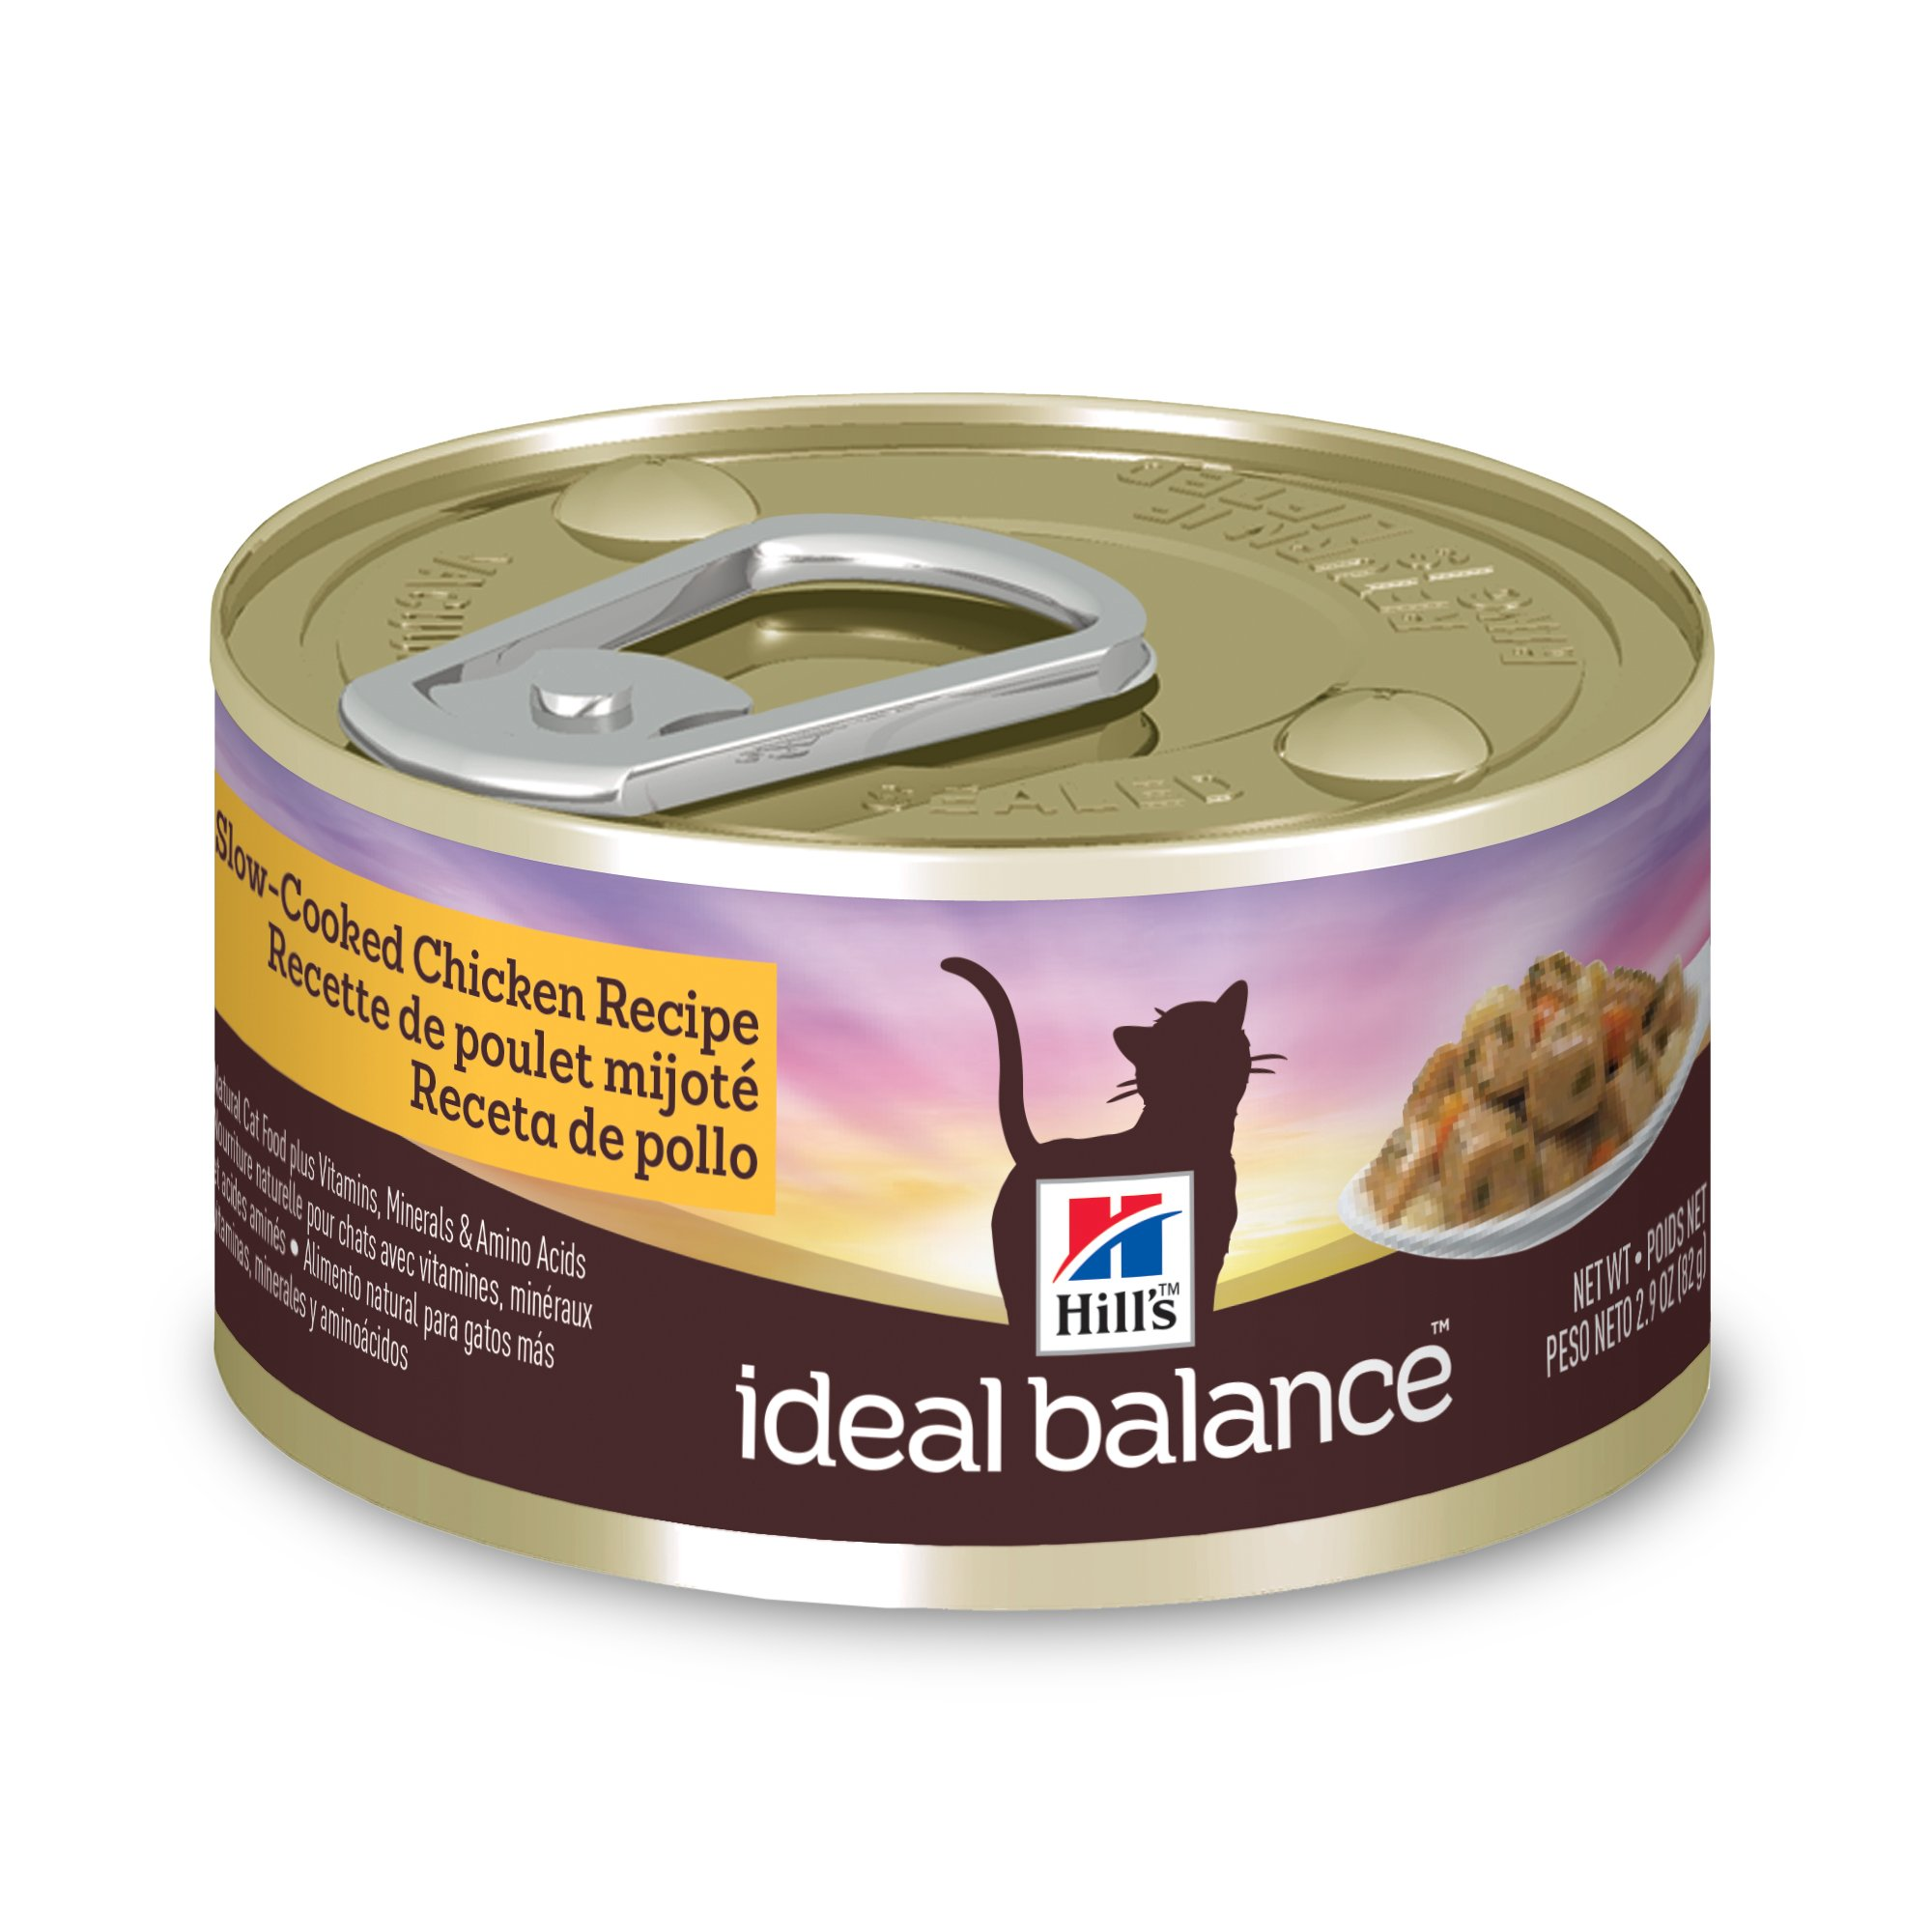 Hills Ideal Balance Natural Cat Food product image